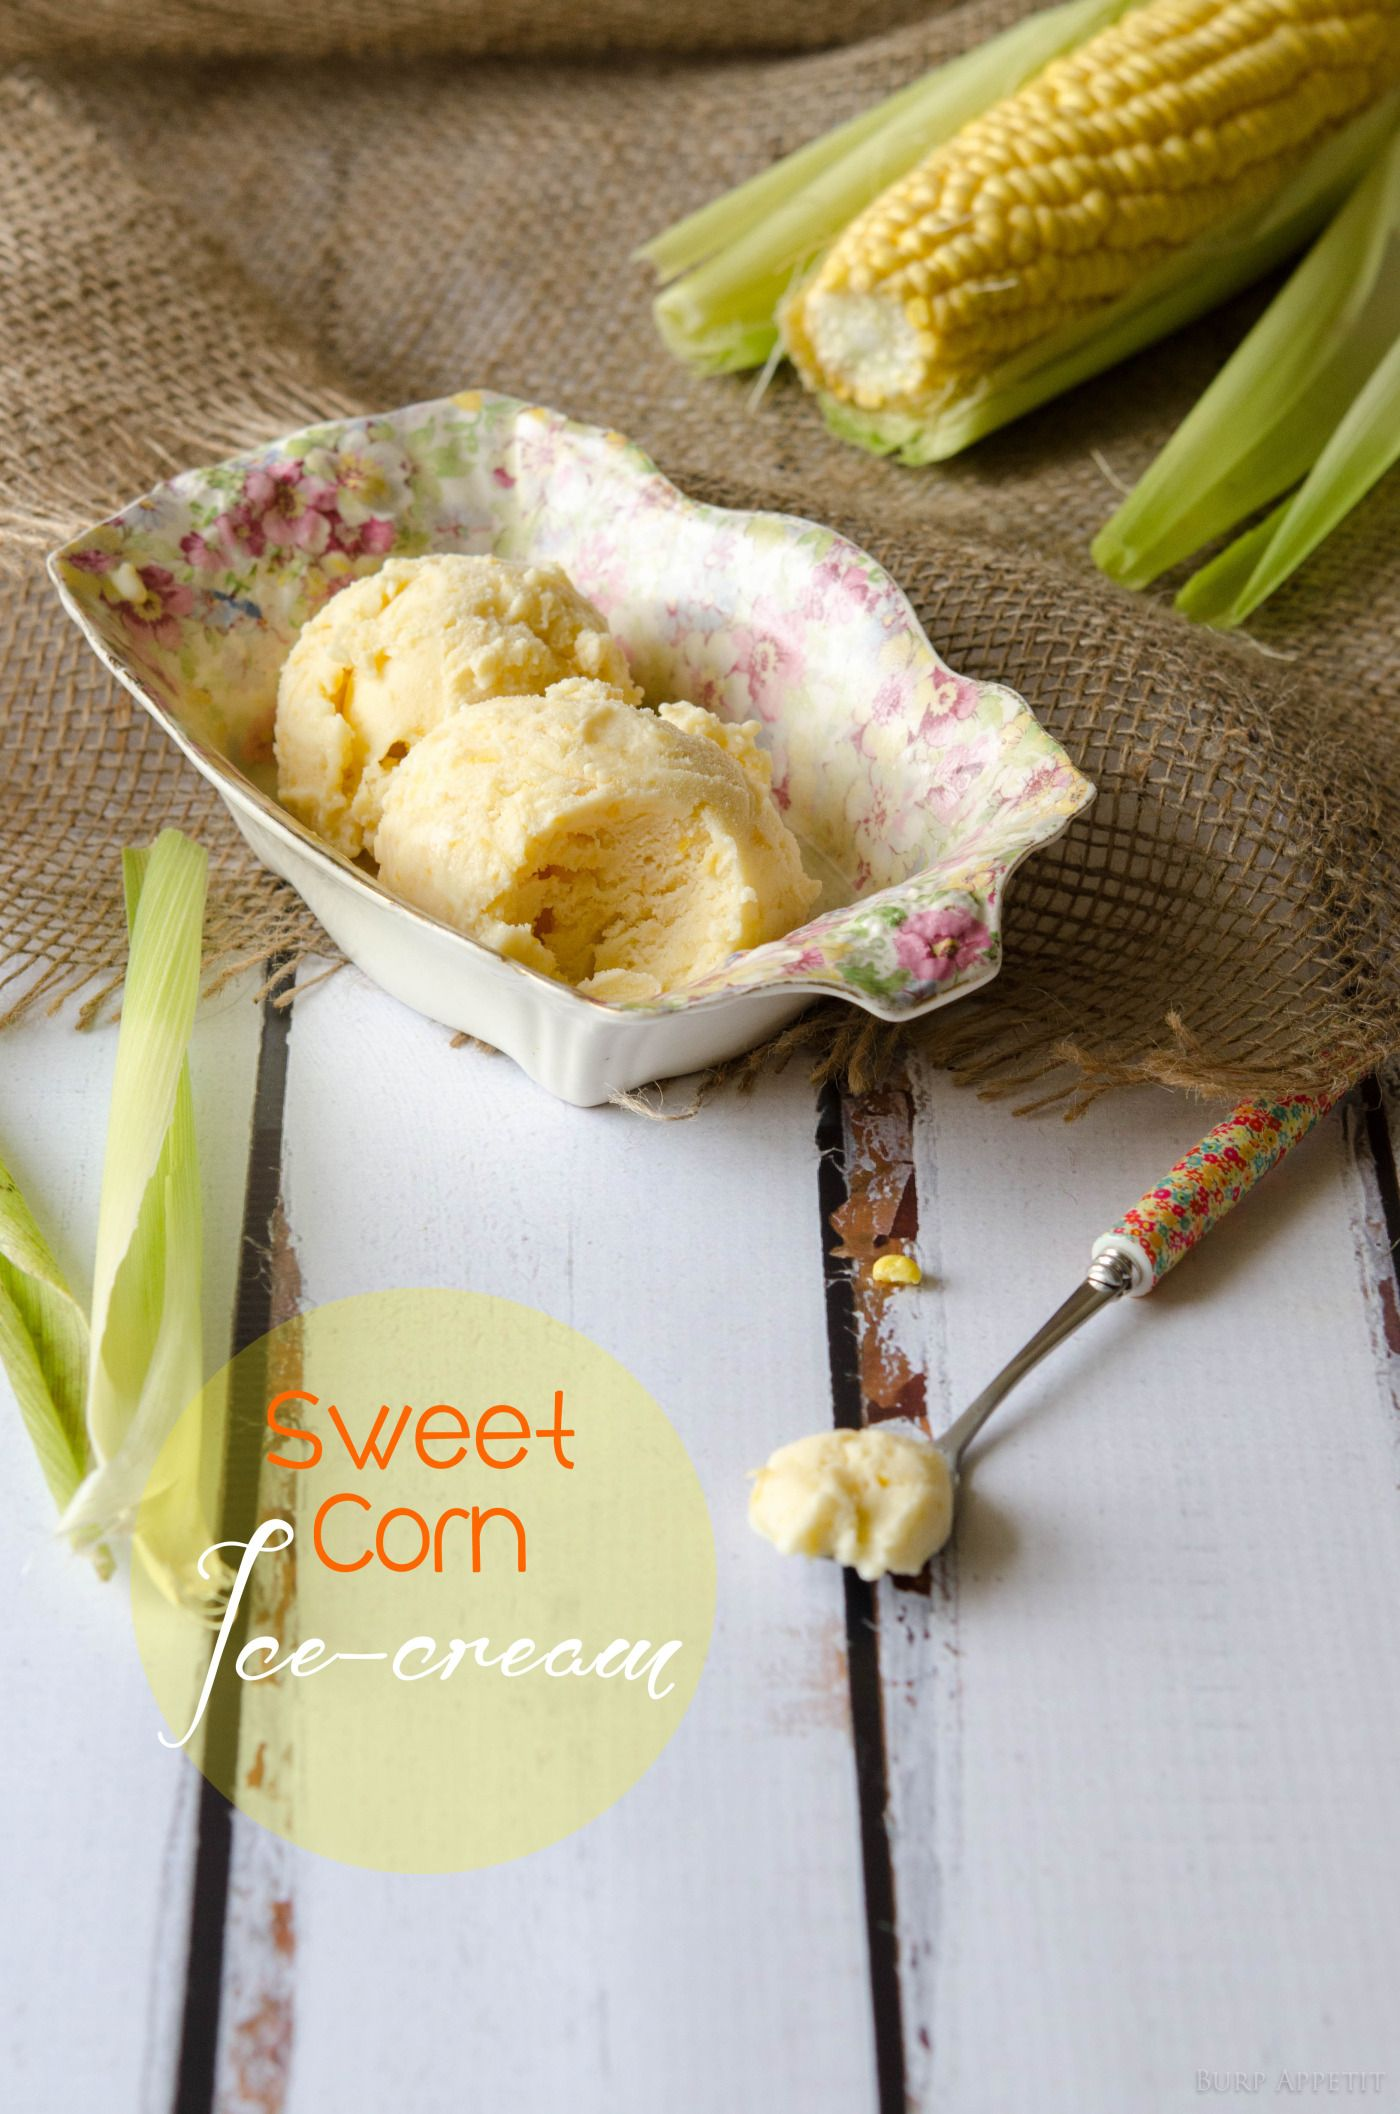 Ooh, love to welcome spring with this creamy Sweet corn ice cream